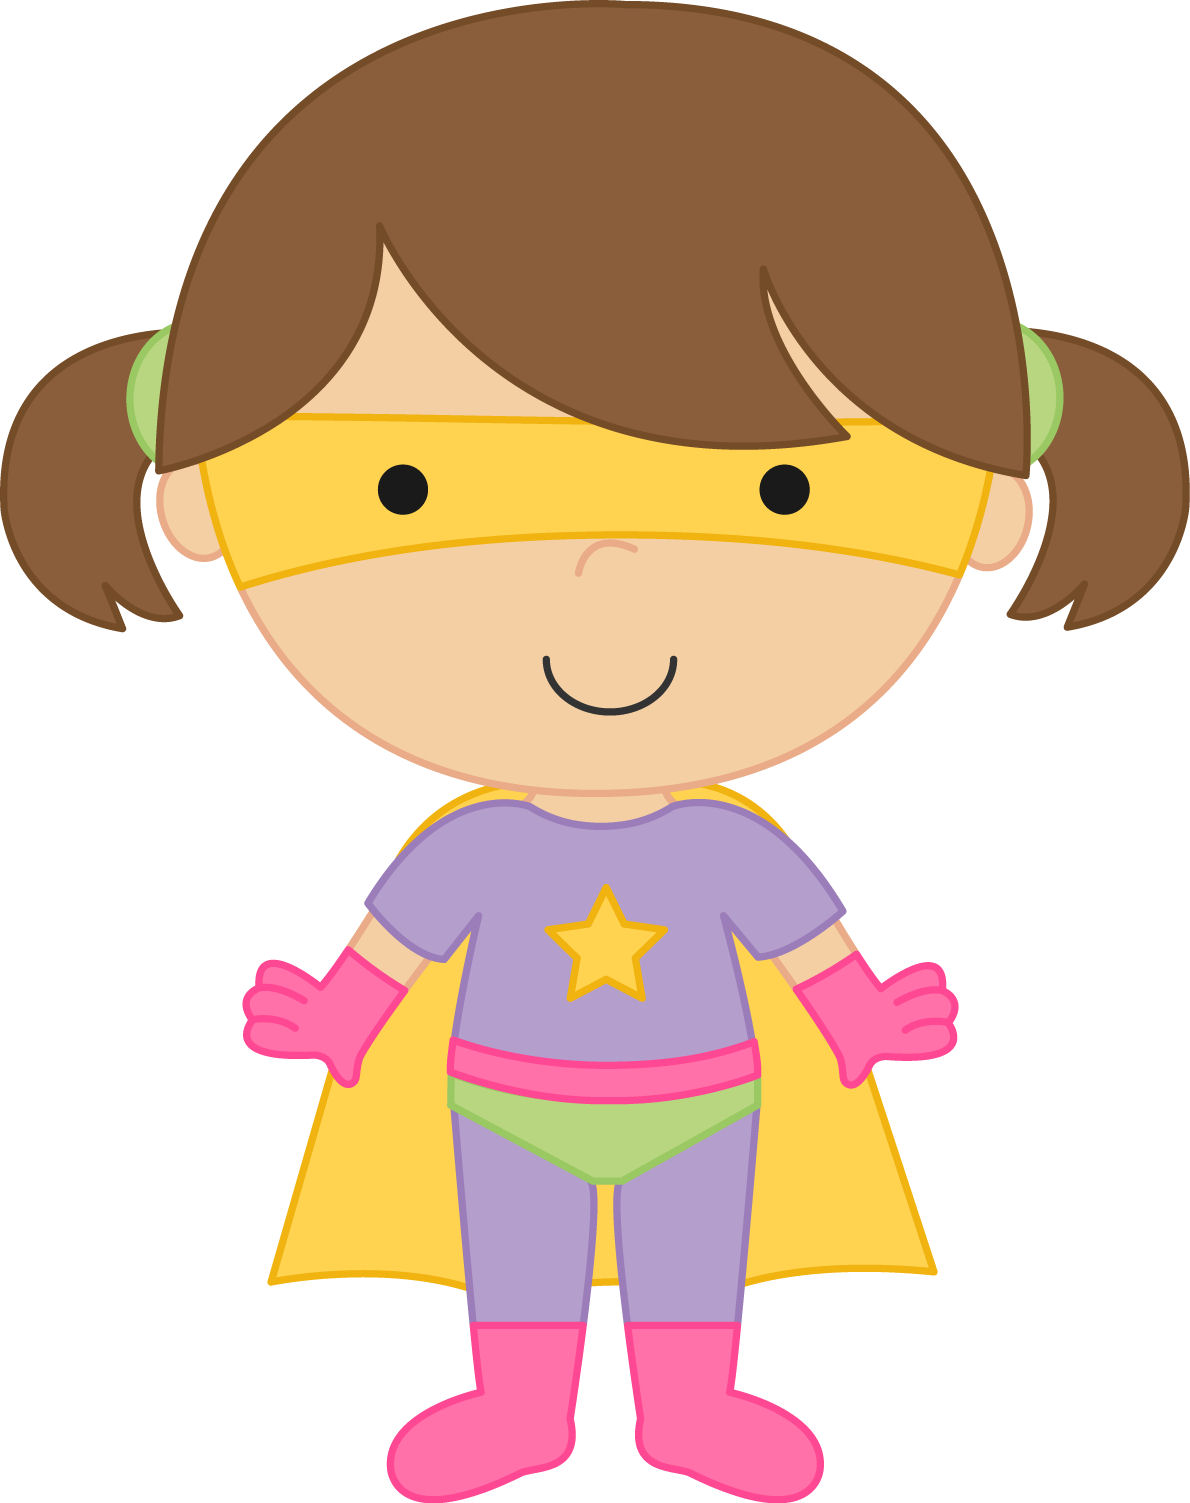 Supergirl save a child on the street clipart banner free library Free Super Cliparts, Download Free Clip Art, Free Clip Art ... banner free library